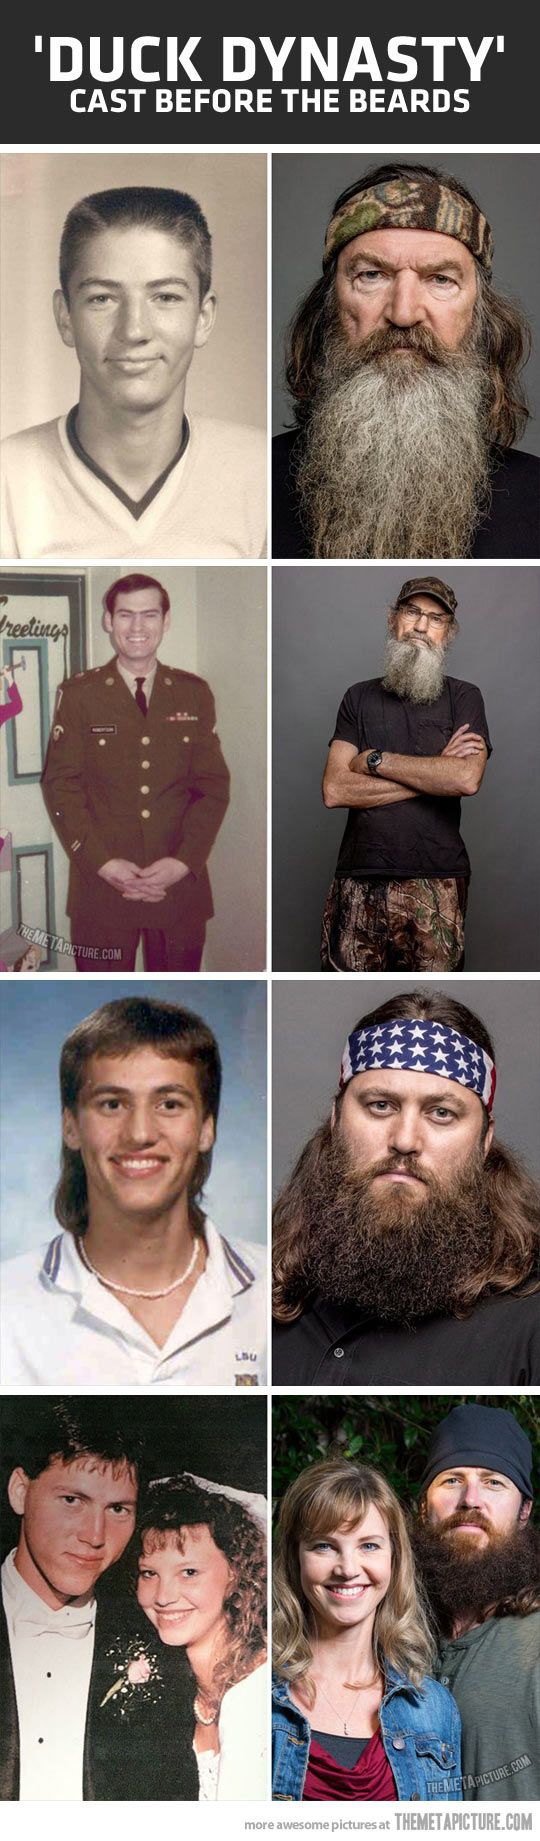 Duck Dynasty cast, before the beards.